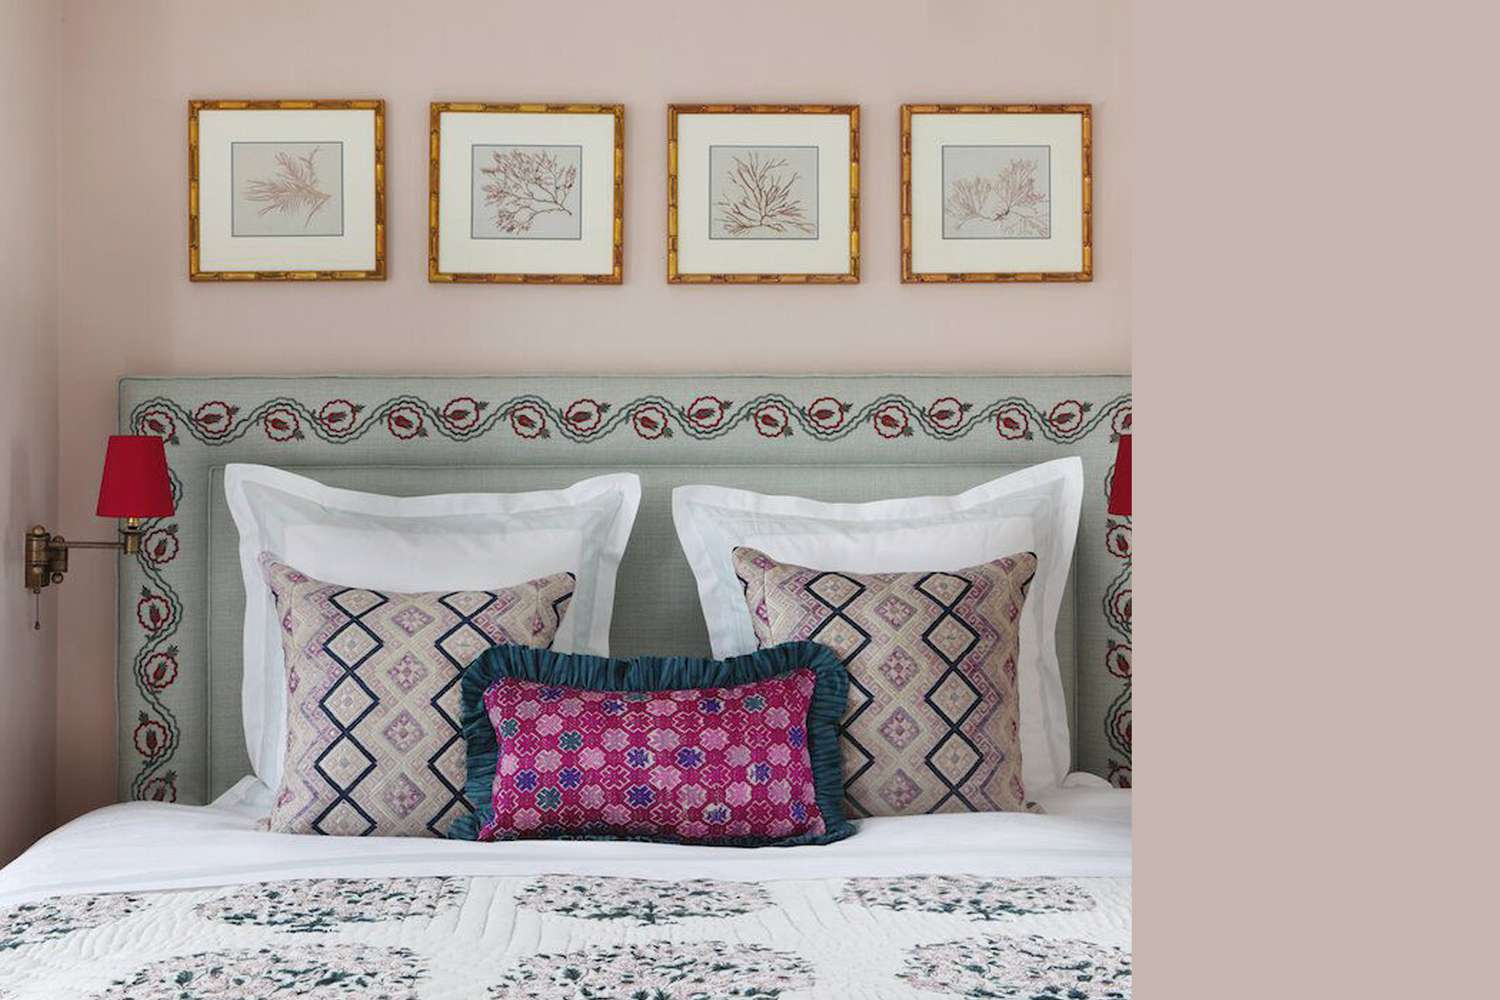 Interior painted a similar color to Farrow & Ball's Pink Drab